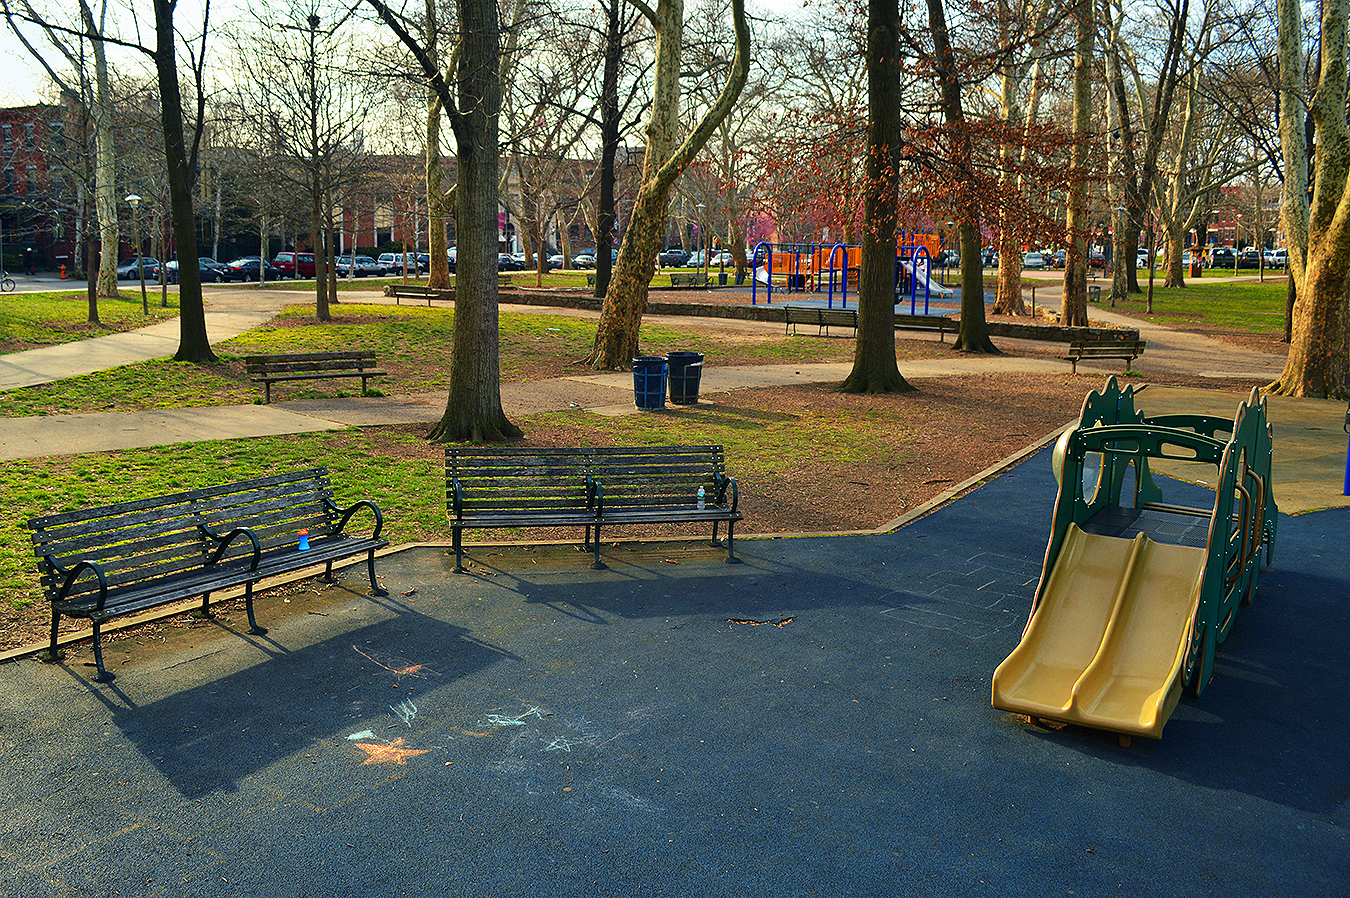 Playground_Clark_Park_Benches_Slide_Wide_View_Philadelphia_PA